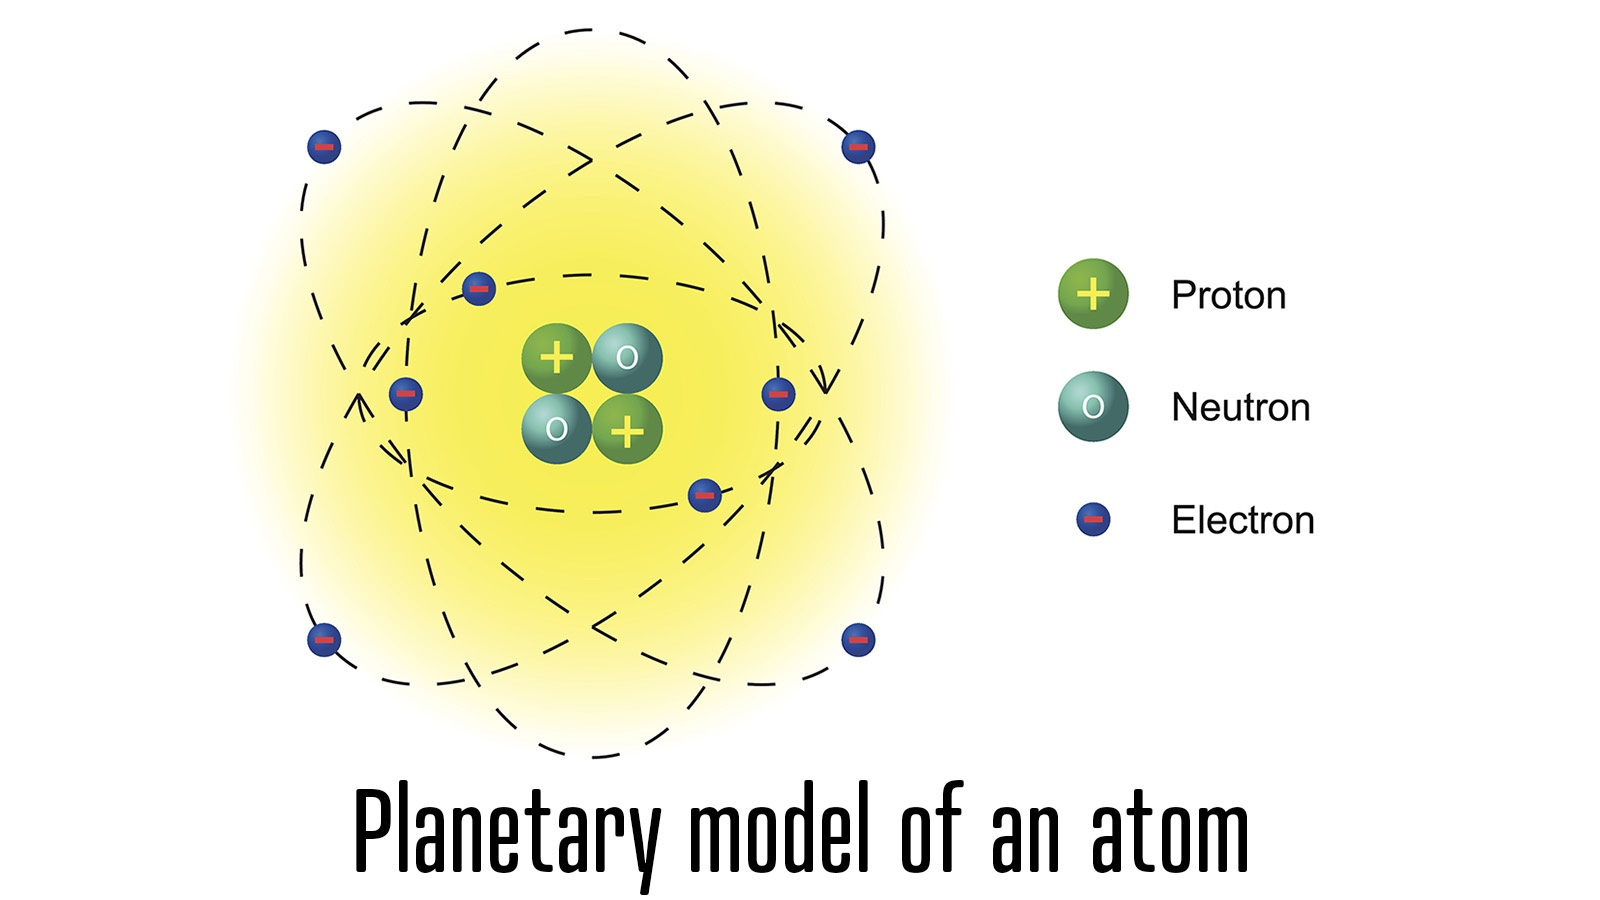 Planetary model of an atom